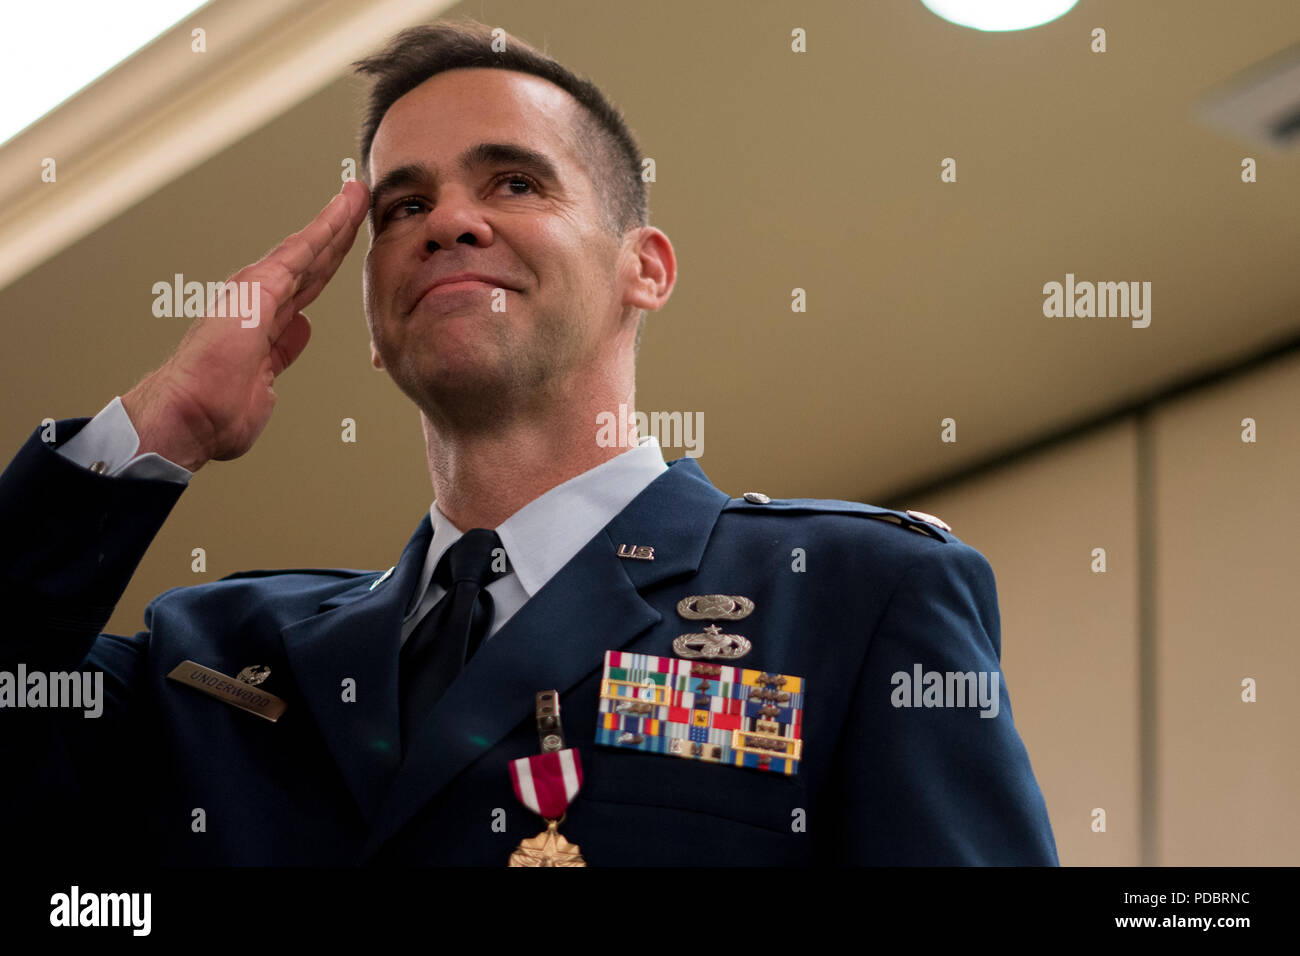 Lt. Col. Hamilton Underwood, 4th Combat Camera Squadron commander, renders a final salute to his unit members during a change of command ceremony Aug. 3, 2018, at Joint Base Charleston, S.C. Underwood passed command of the 4th CTCS to Lt. Col. Chad Gibson, who previously served as the deputy director for Air Force Reserve Command public affairs. The 4th CTCS is the only Reserve combat camera unit and is a rapid response force, specializing in aerial documentation. (U.S. Air Force photo by Tech. Sgt. Jamal D. Sutter) Stock Photo